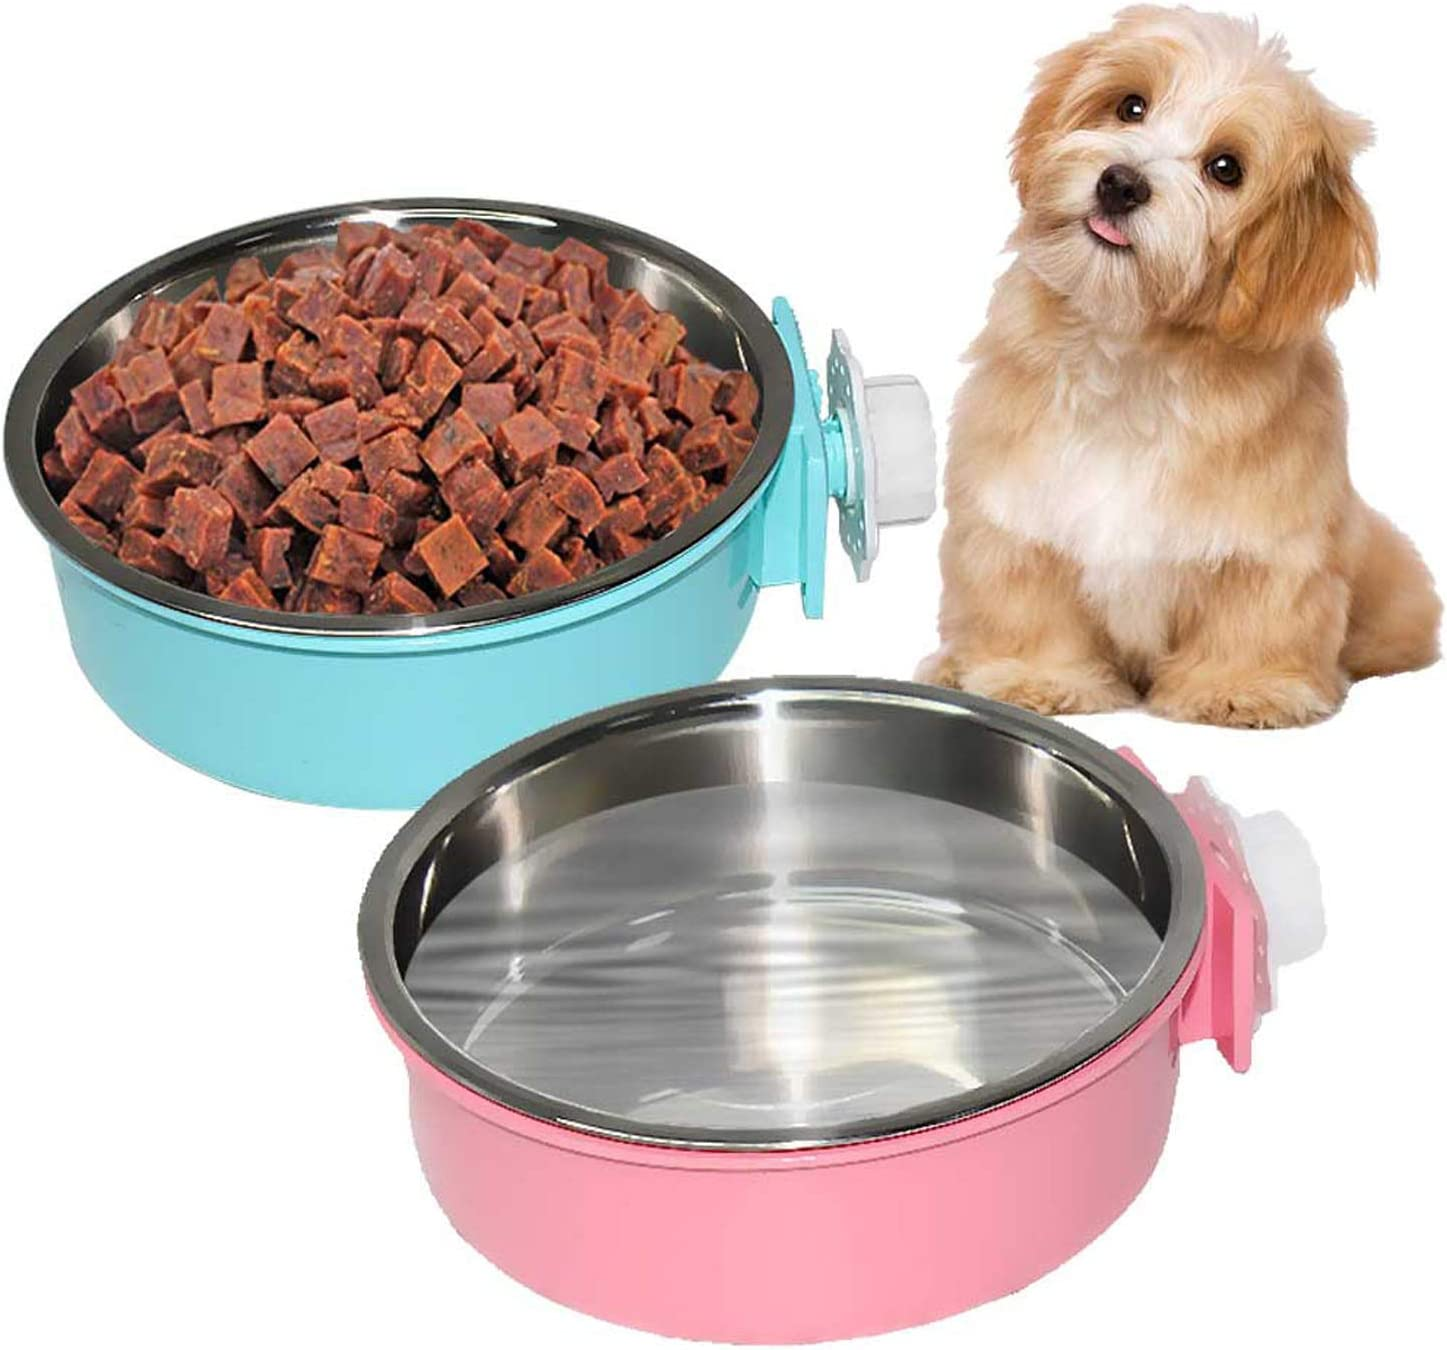 PINVNBY 2 Pcs Large Crate Dog Bowl Removable Stainless Steel Water Food Bowl Cage Hanging Pet Dish Bowls for Dog,Cat,Puppy,Guinea Pigs and Birds